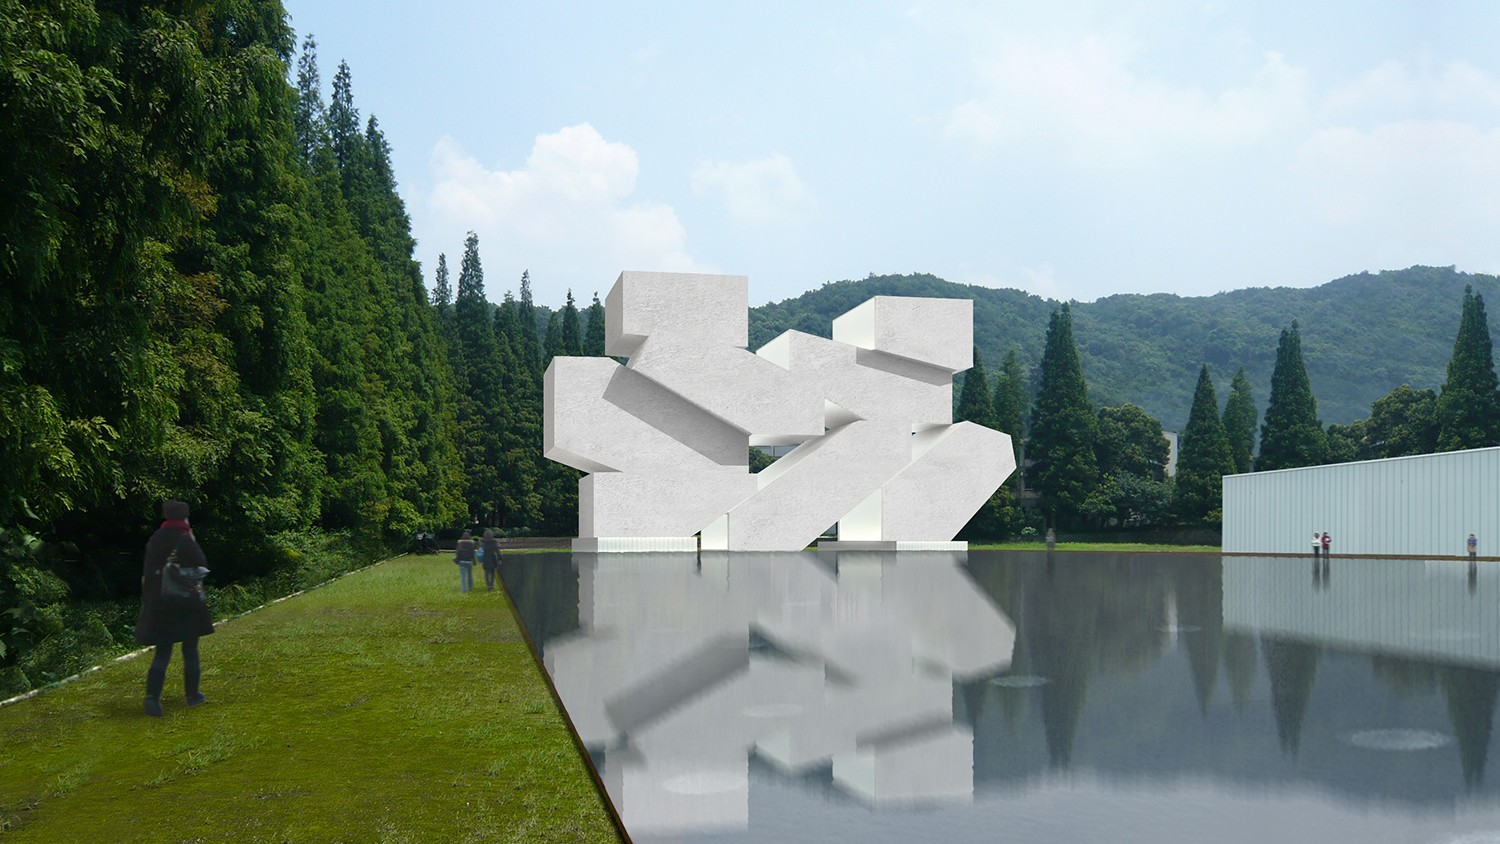 https://s3.us-east-2.amazonaws.com/steven-holl/uploads/projects/project-images/StevenHollArchitects_HangzhouMusic_20100715 waterplaza FT 2 floors copy 3_WH.jpg